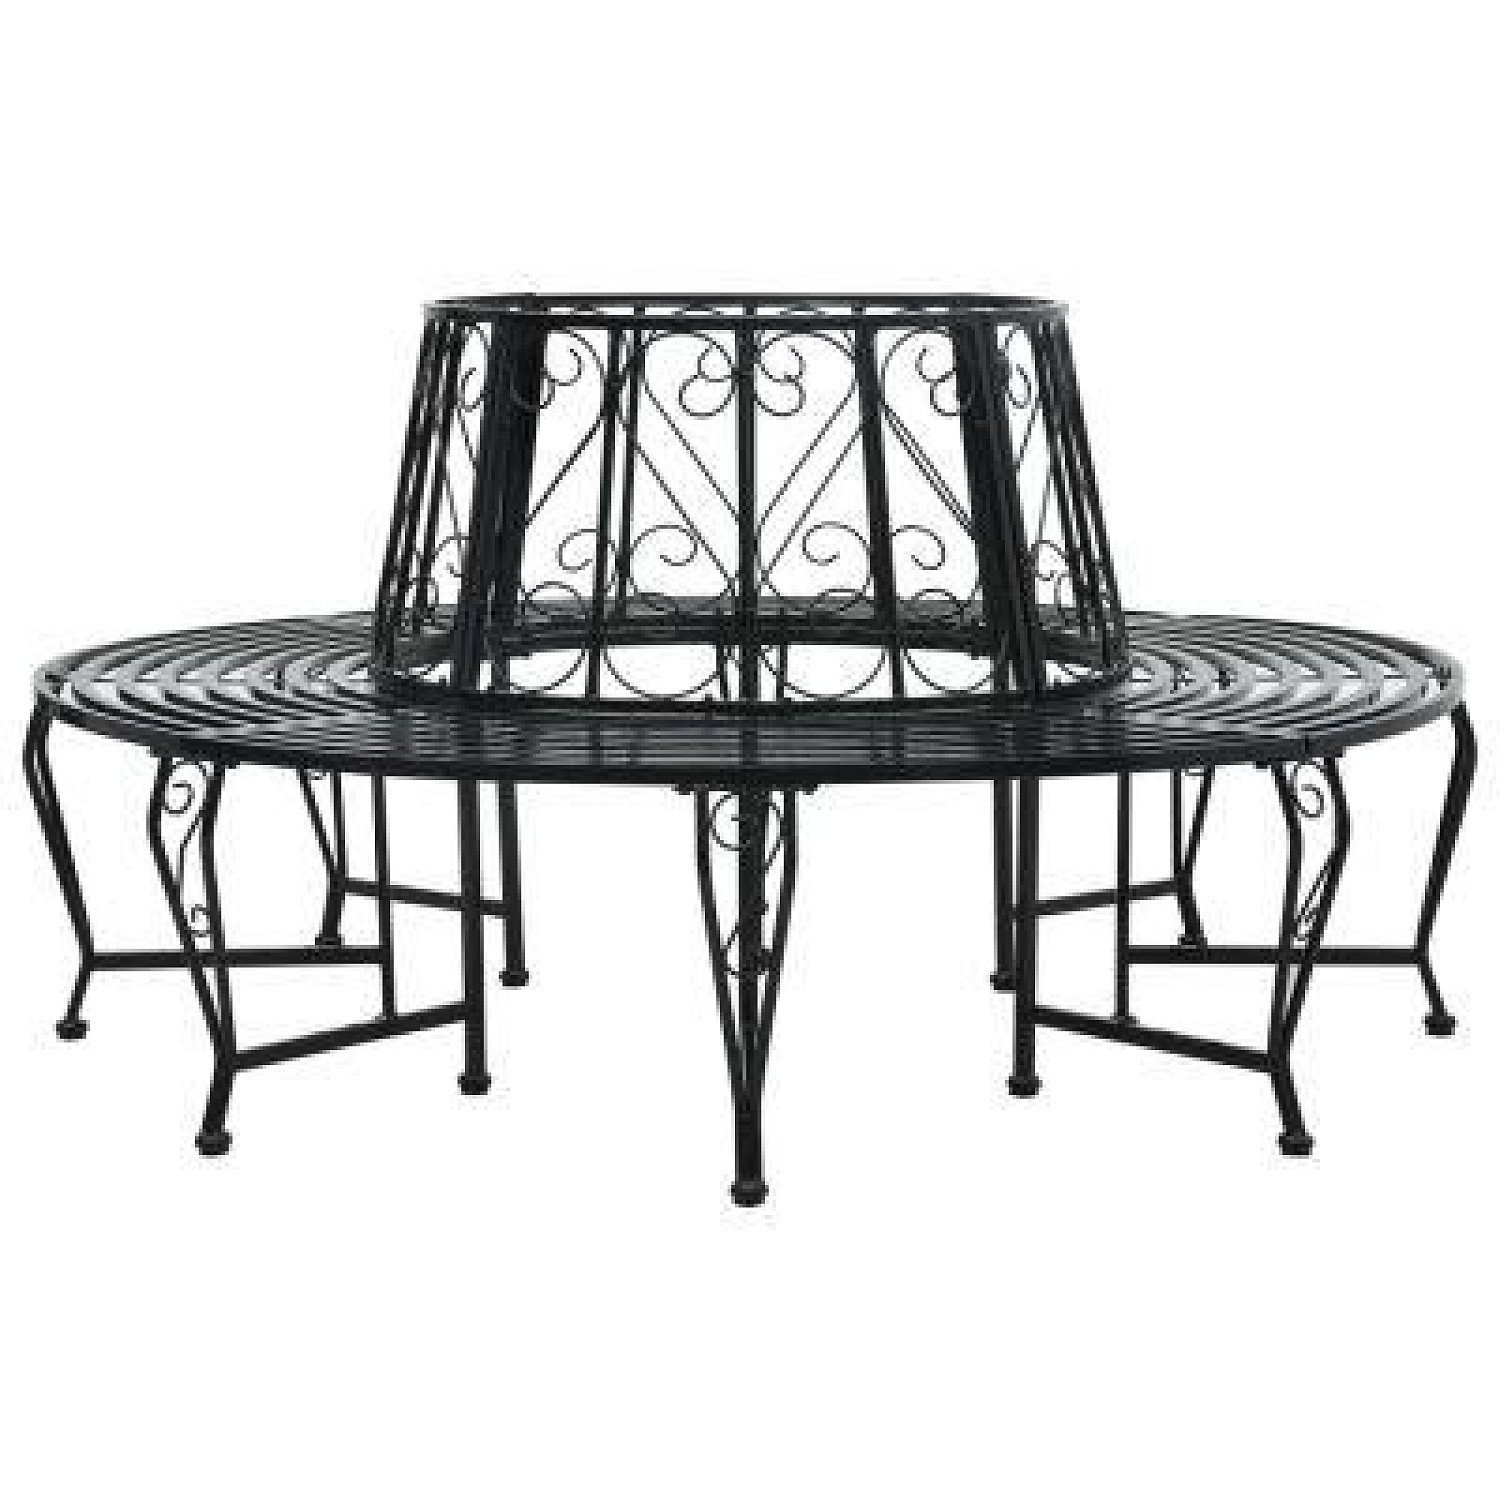 ROUND TREE BENCH STEEL - free delivery £289